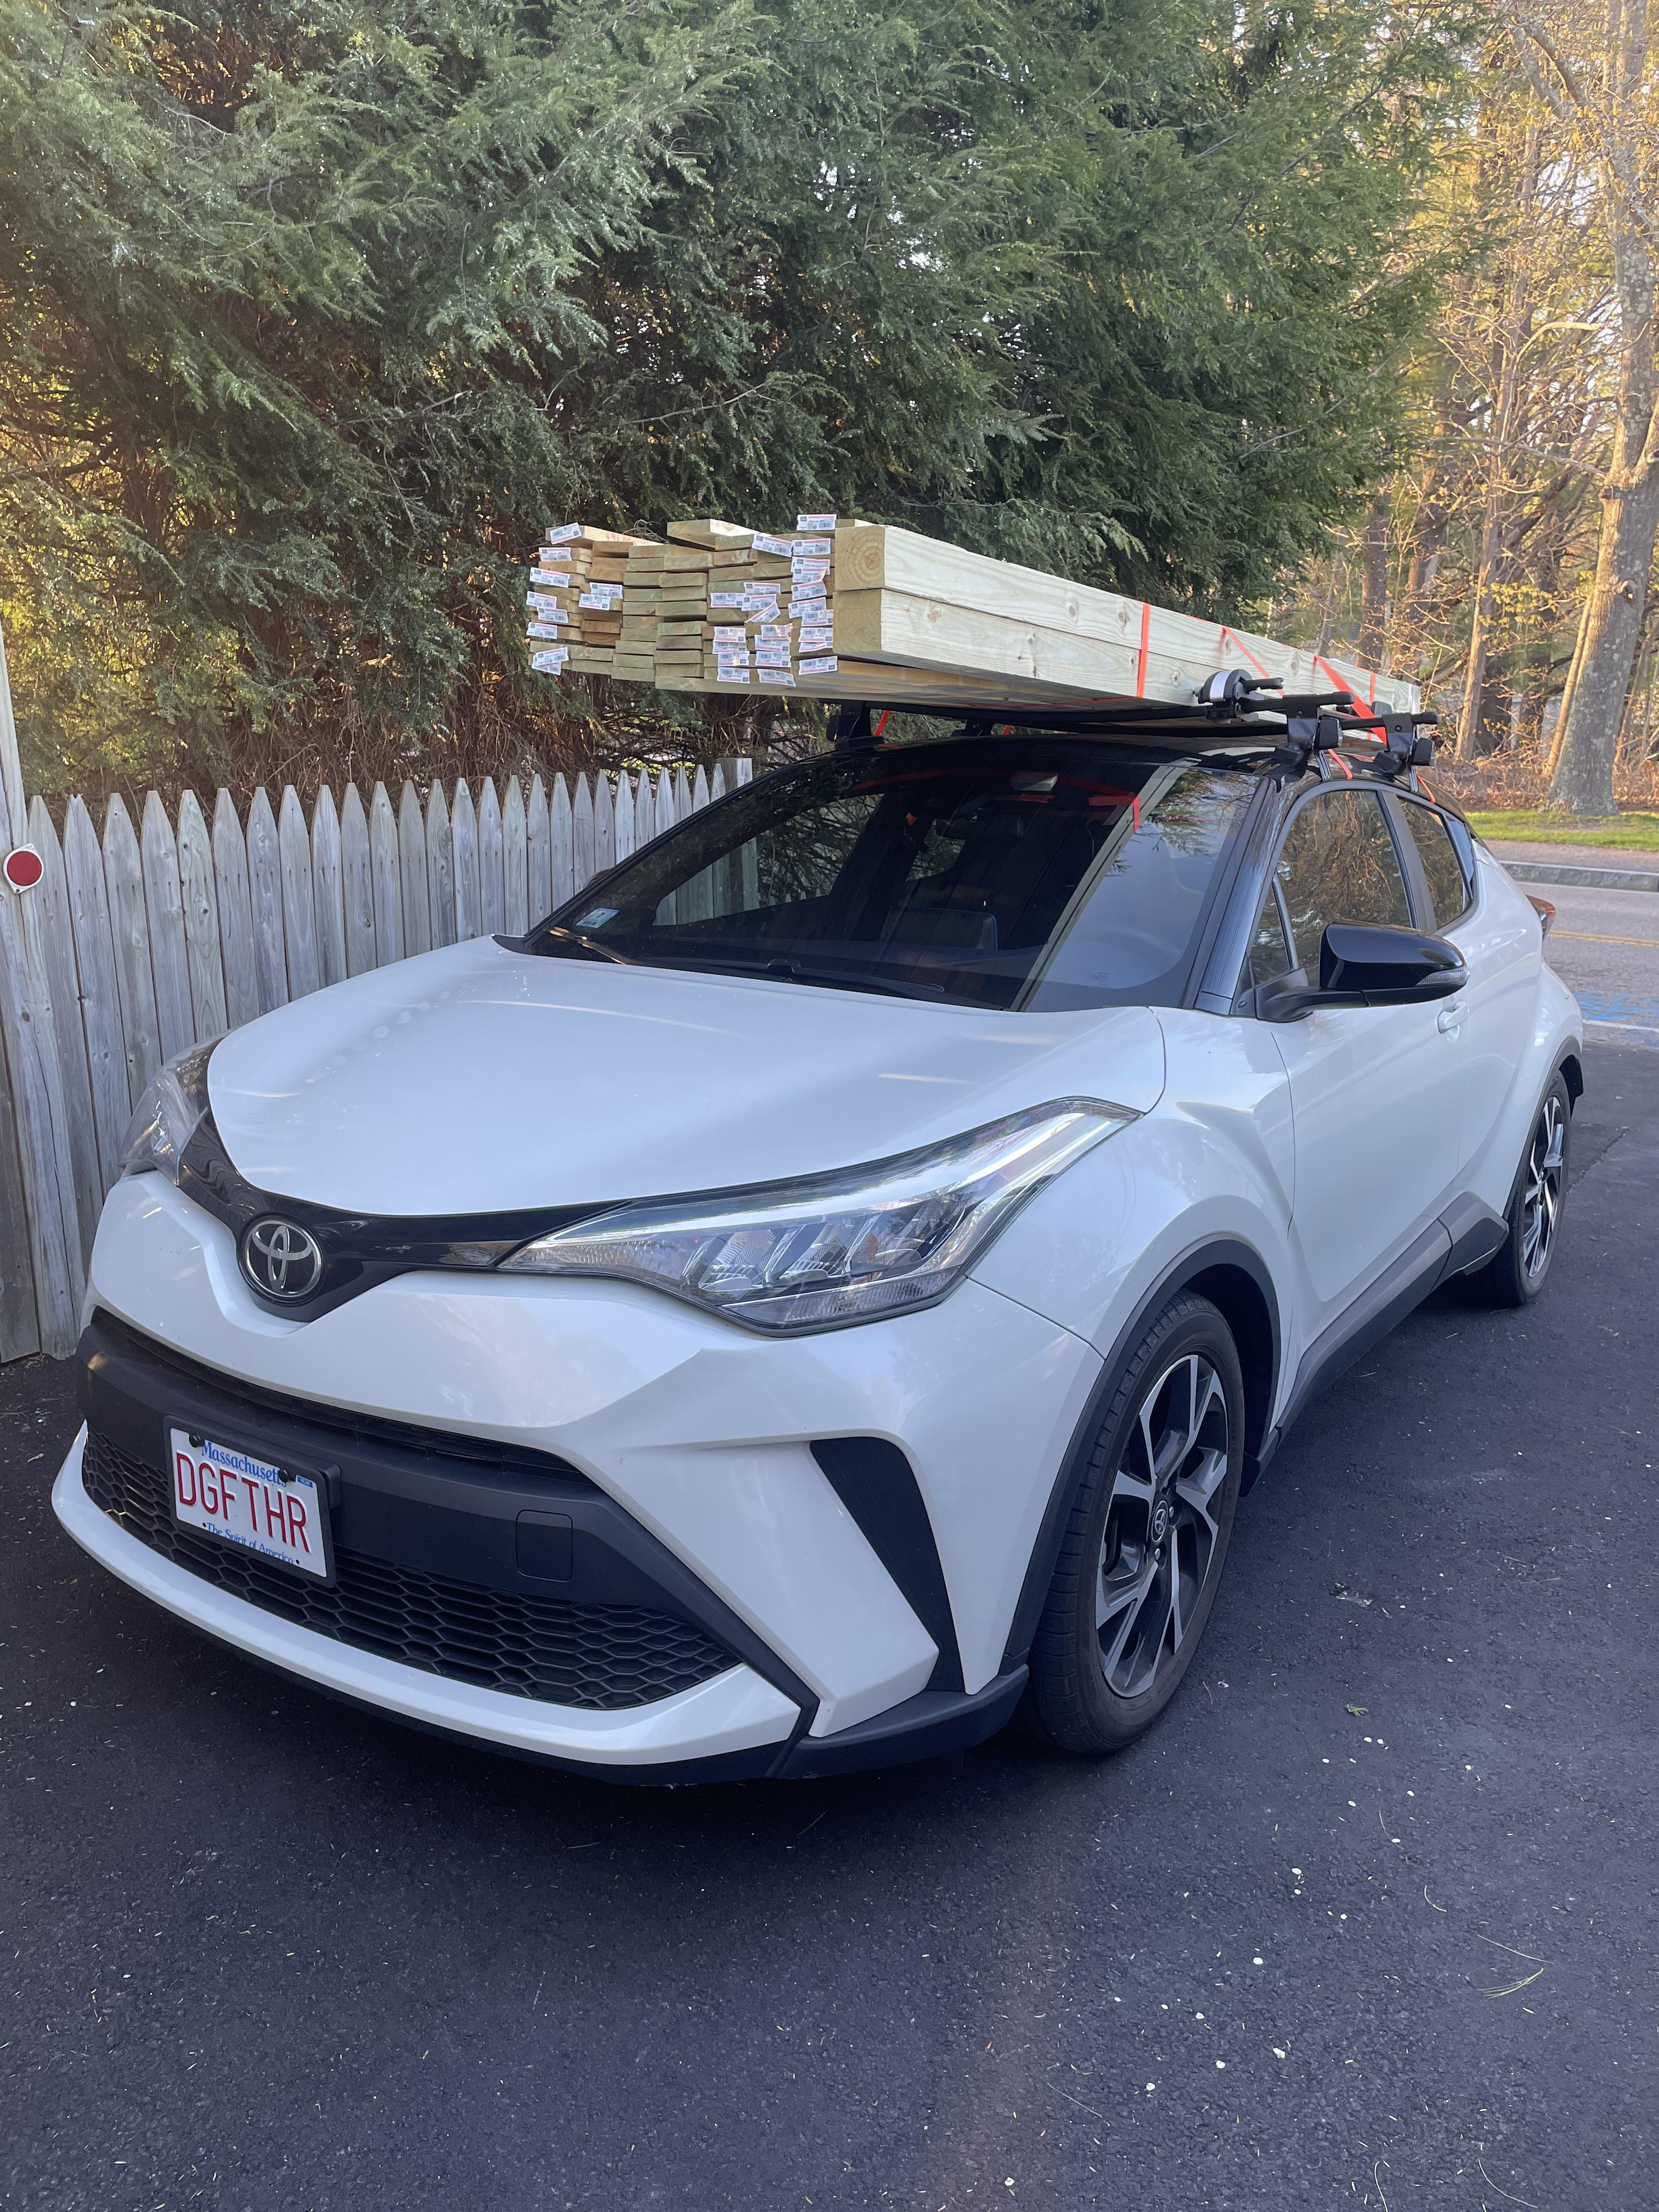 shout out to inno roof rack systems for